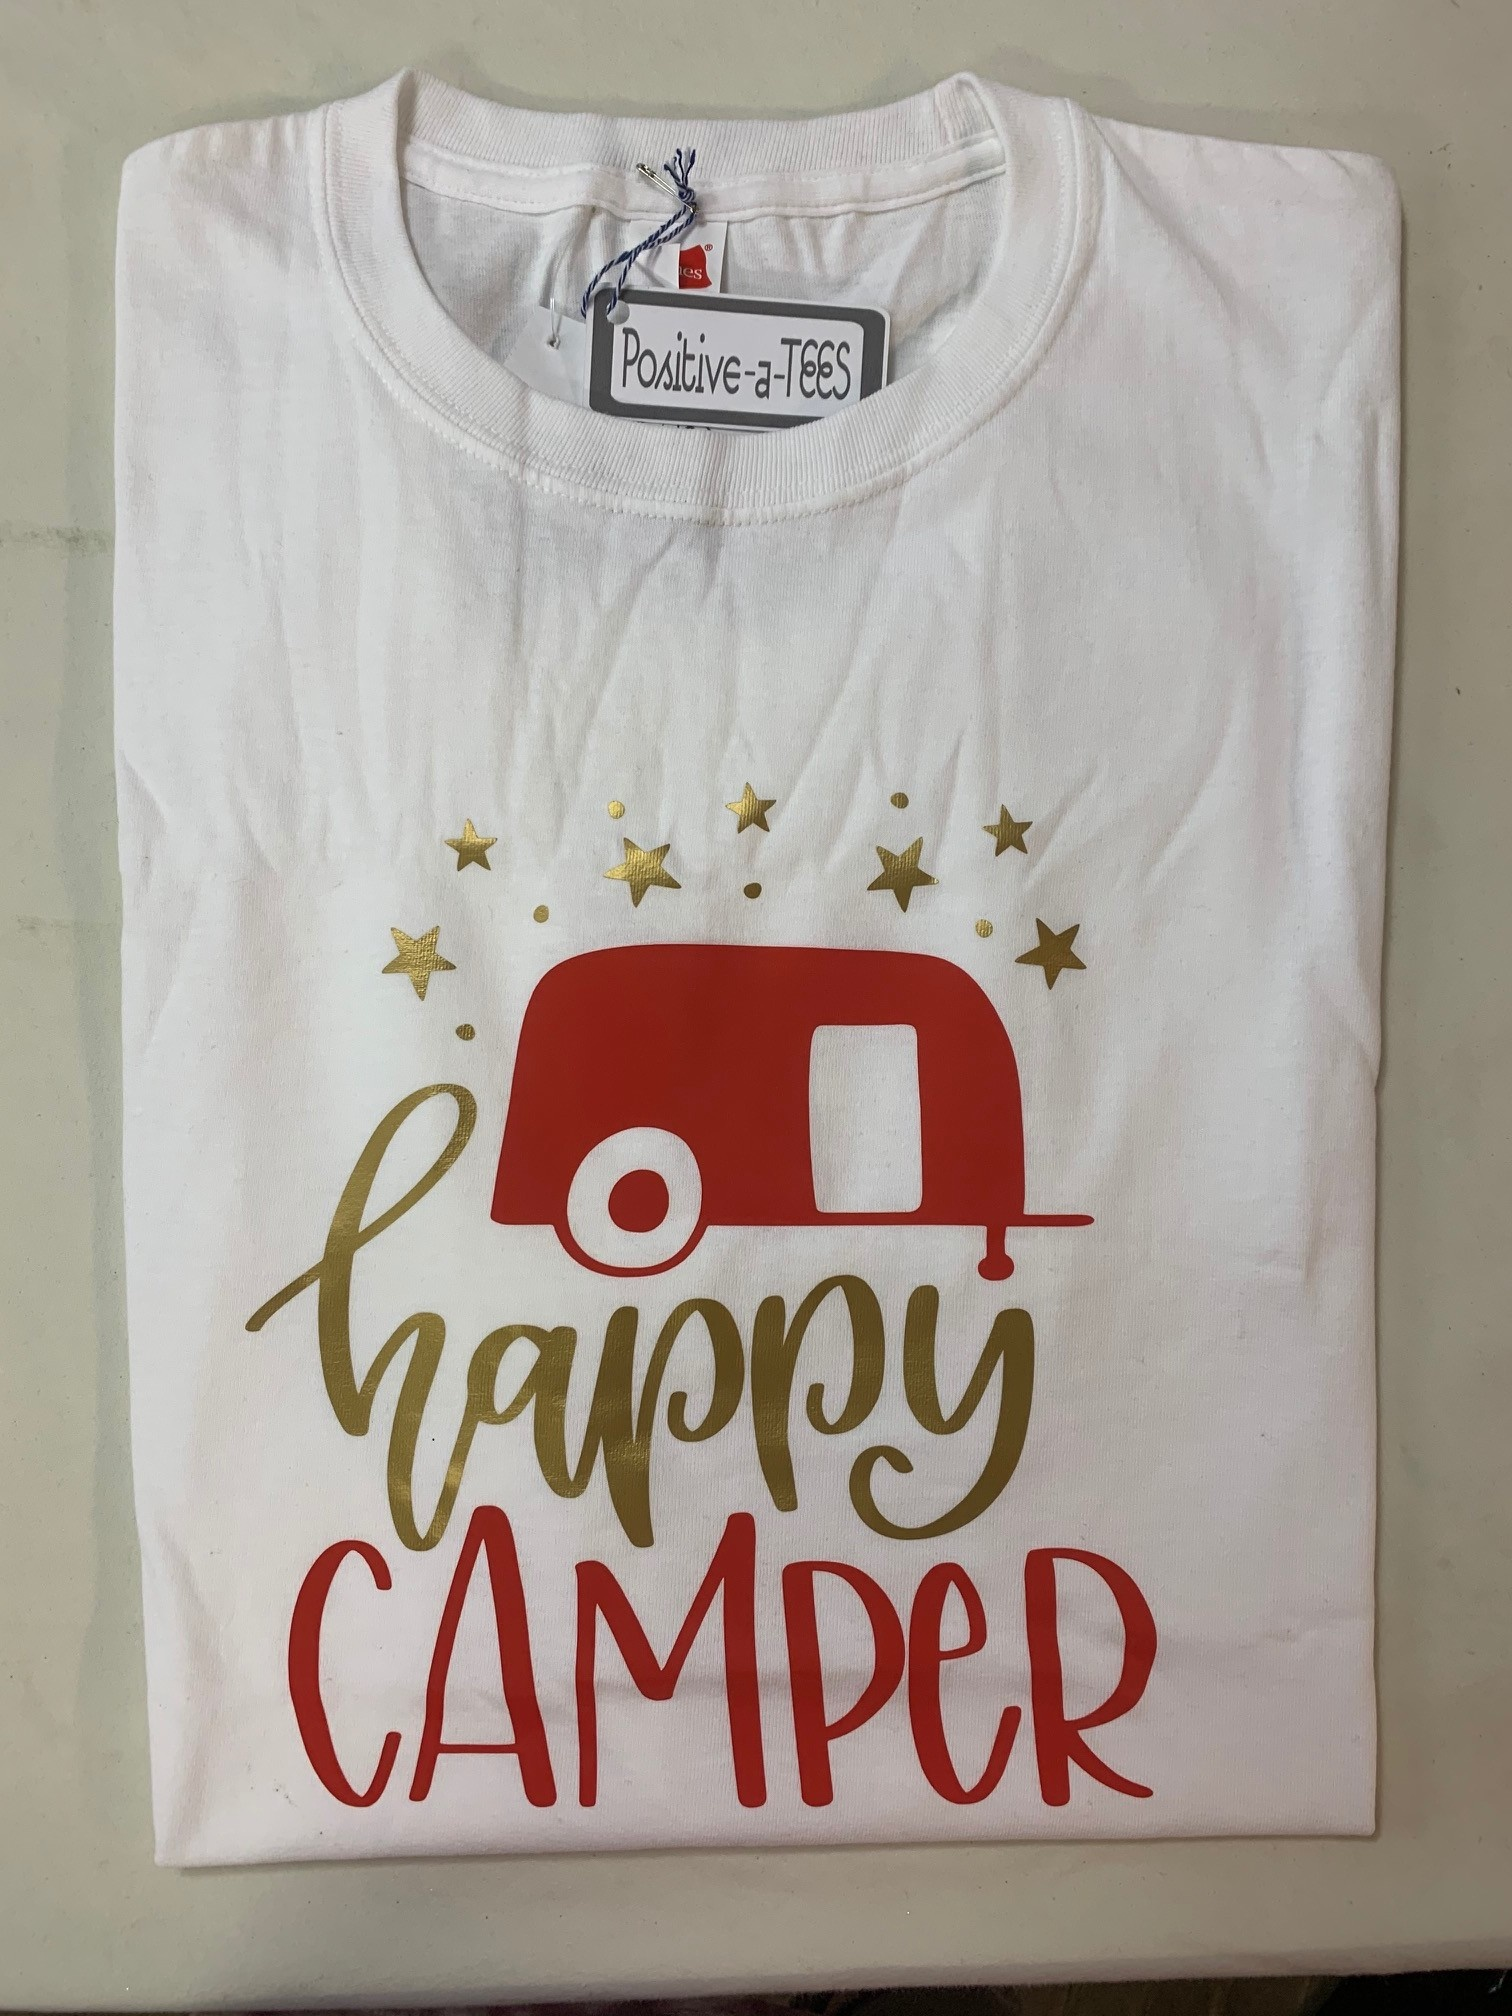 Positive-a-tees Positive-a-tees Happy Camper XL